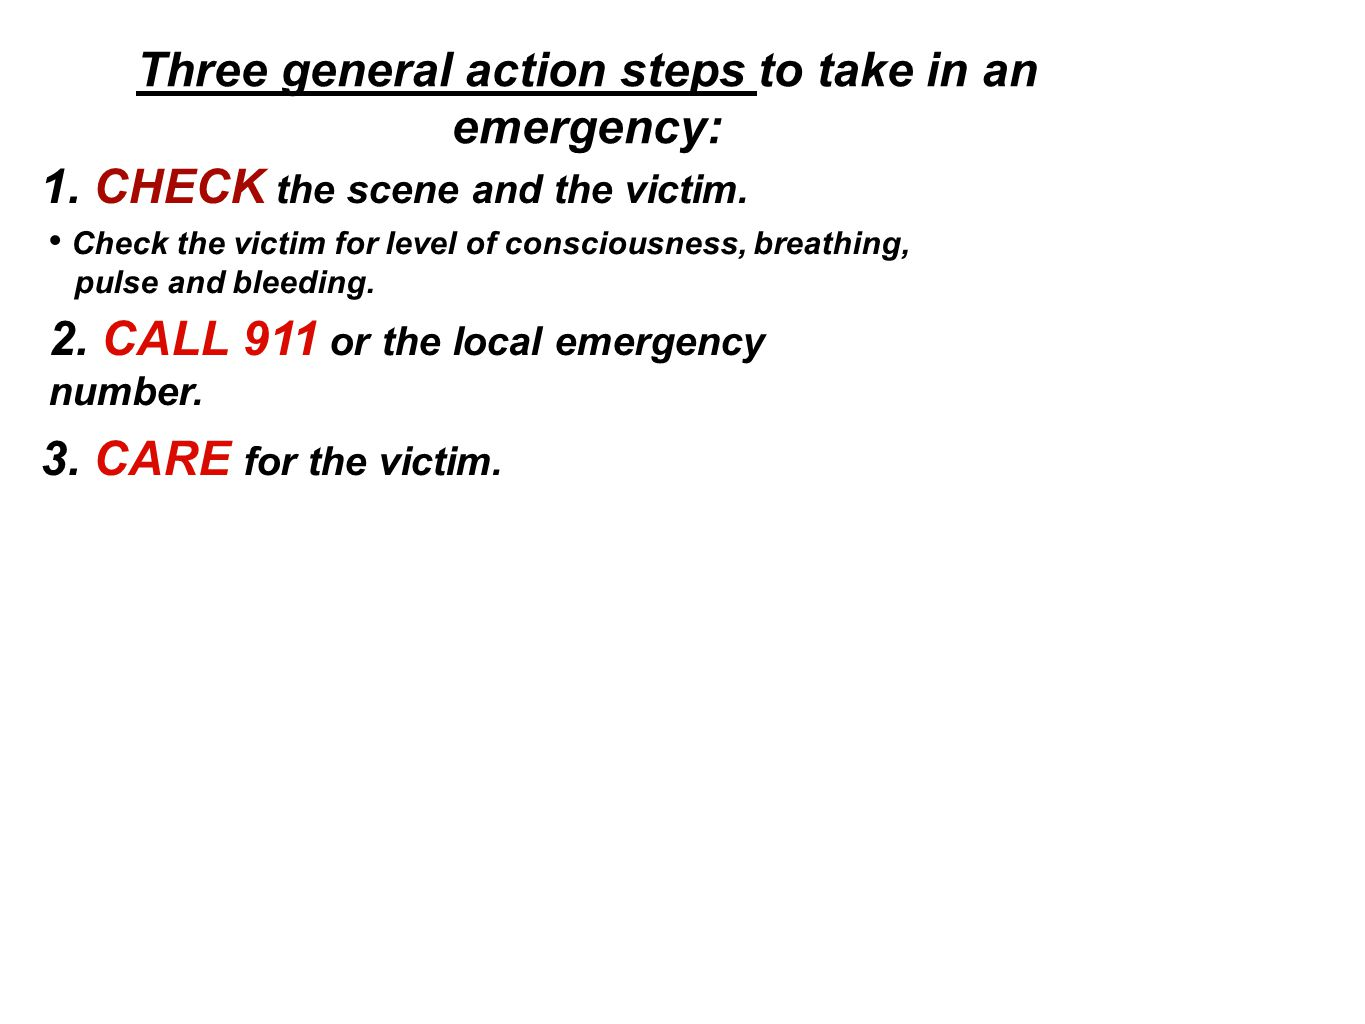 First Aid for Poisoning Steps to be taken when you suspect someone has been poisoned.